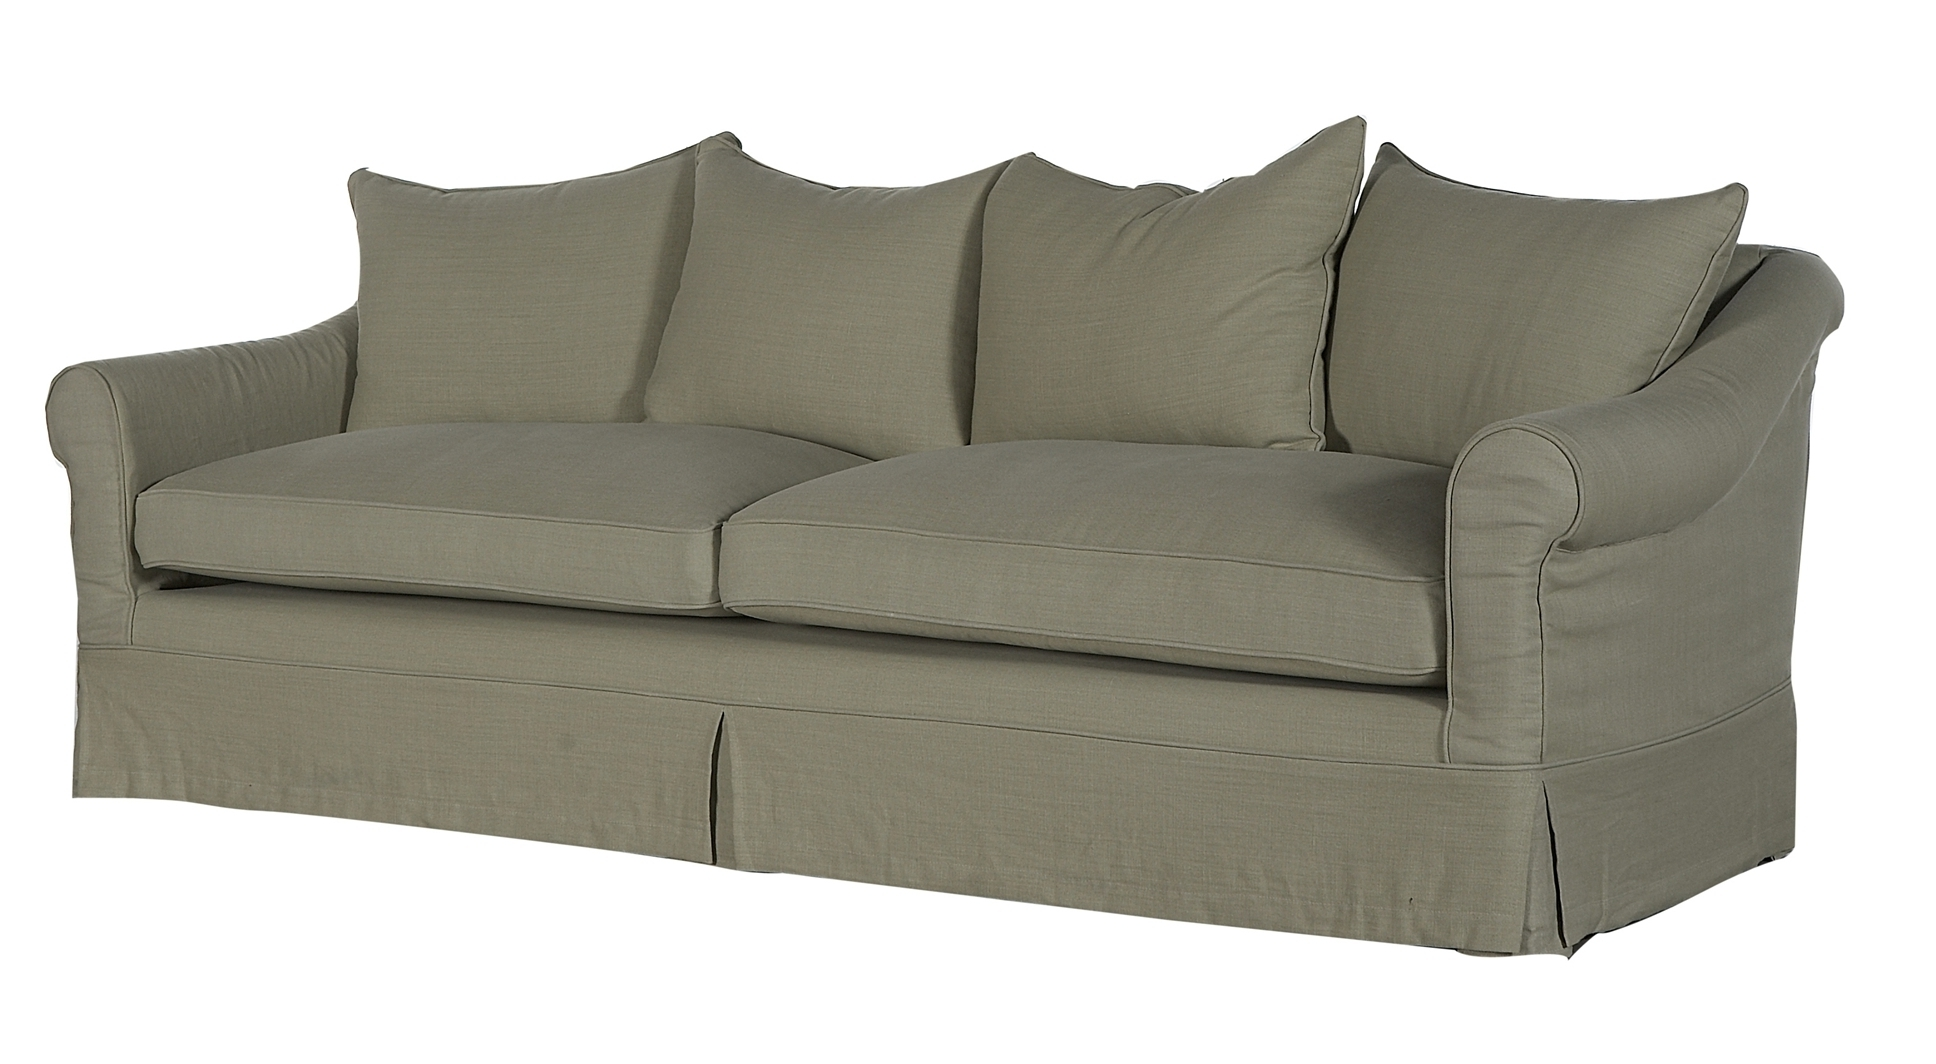 Sofas With Washable Covers In 2018 Washable Slipcovered Sofas Machine Washable Sectional White (View 9 of 15)